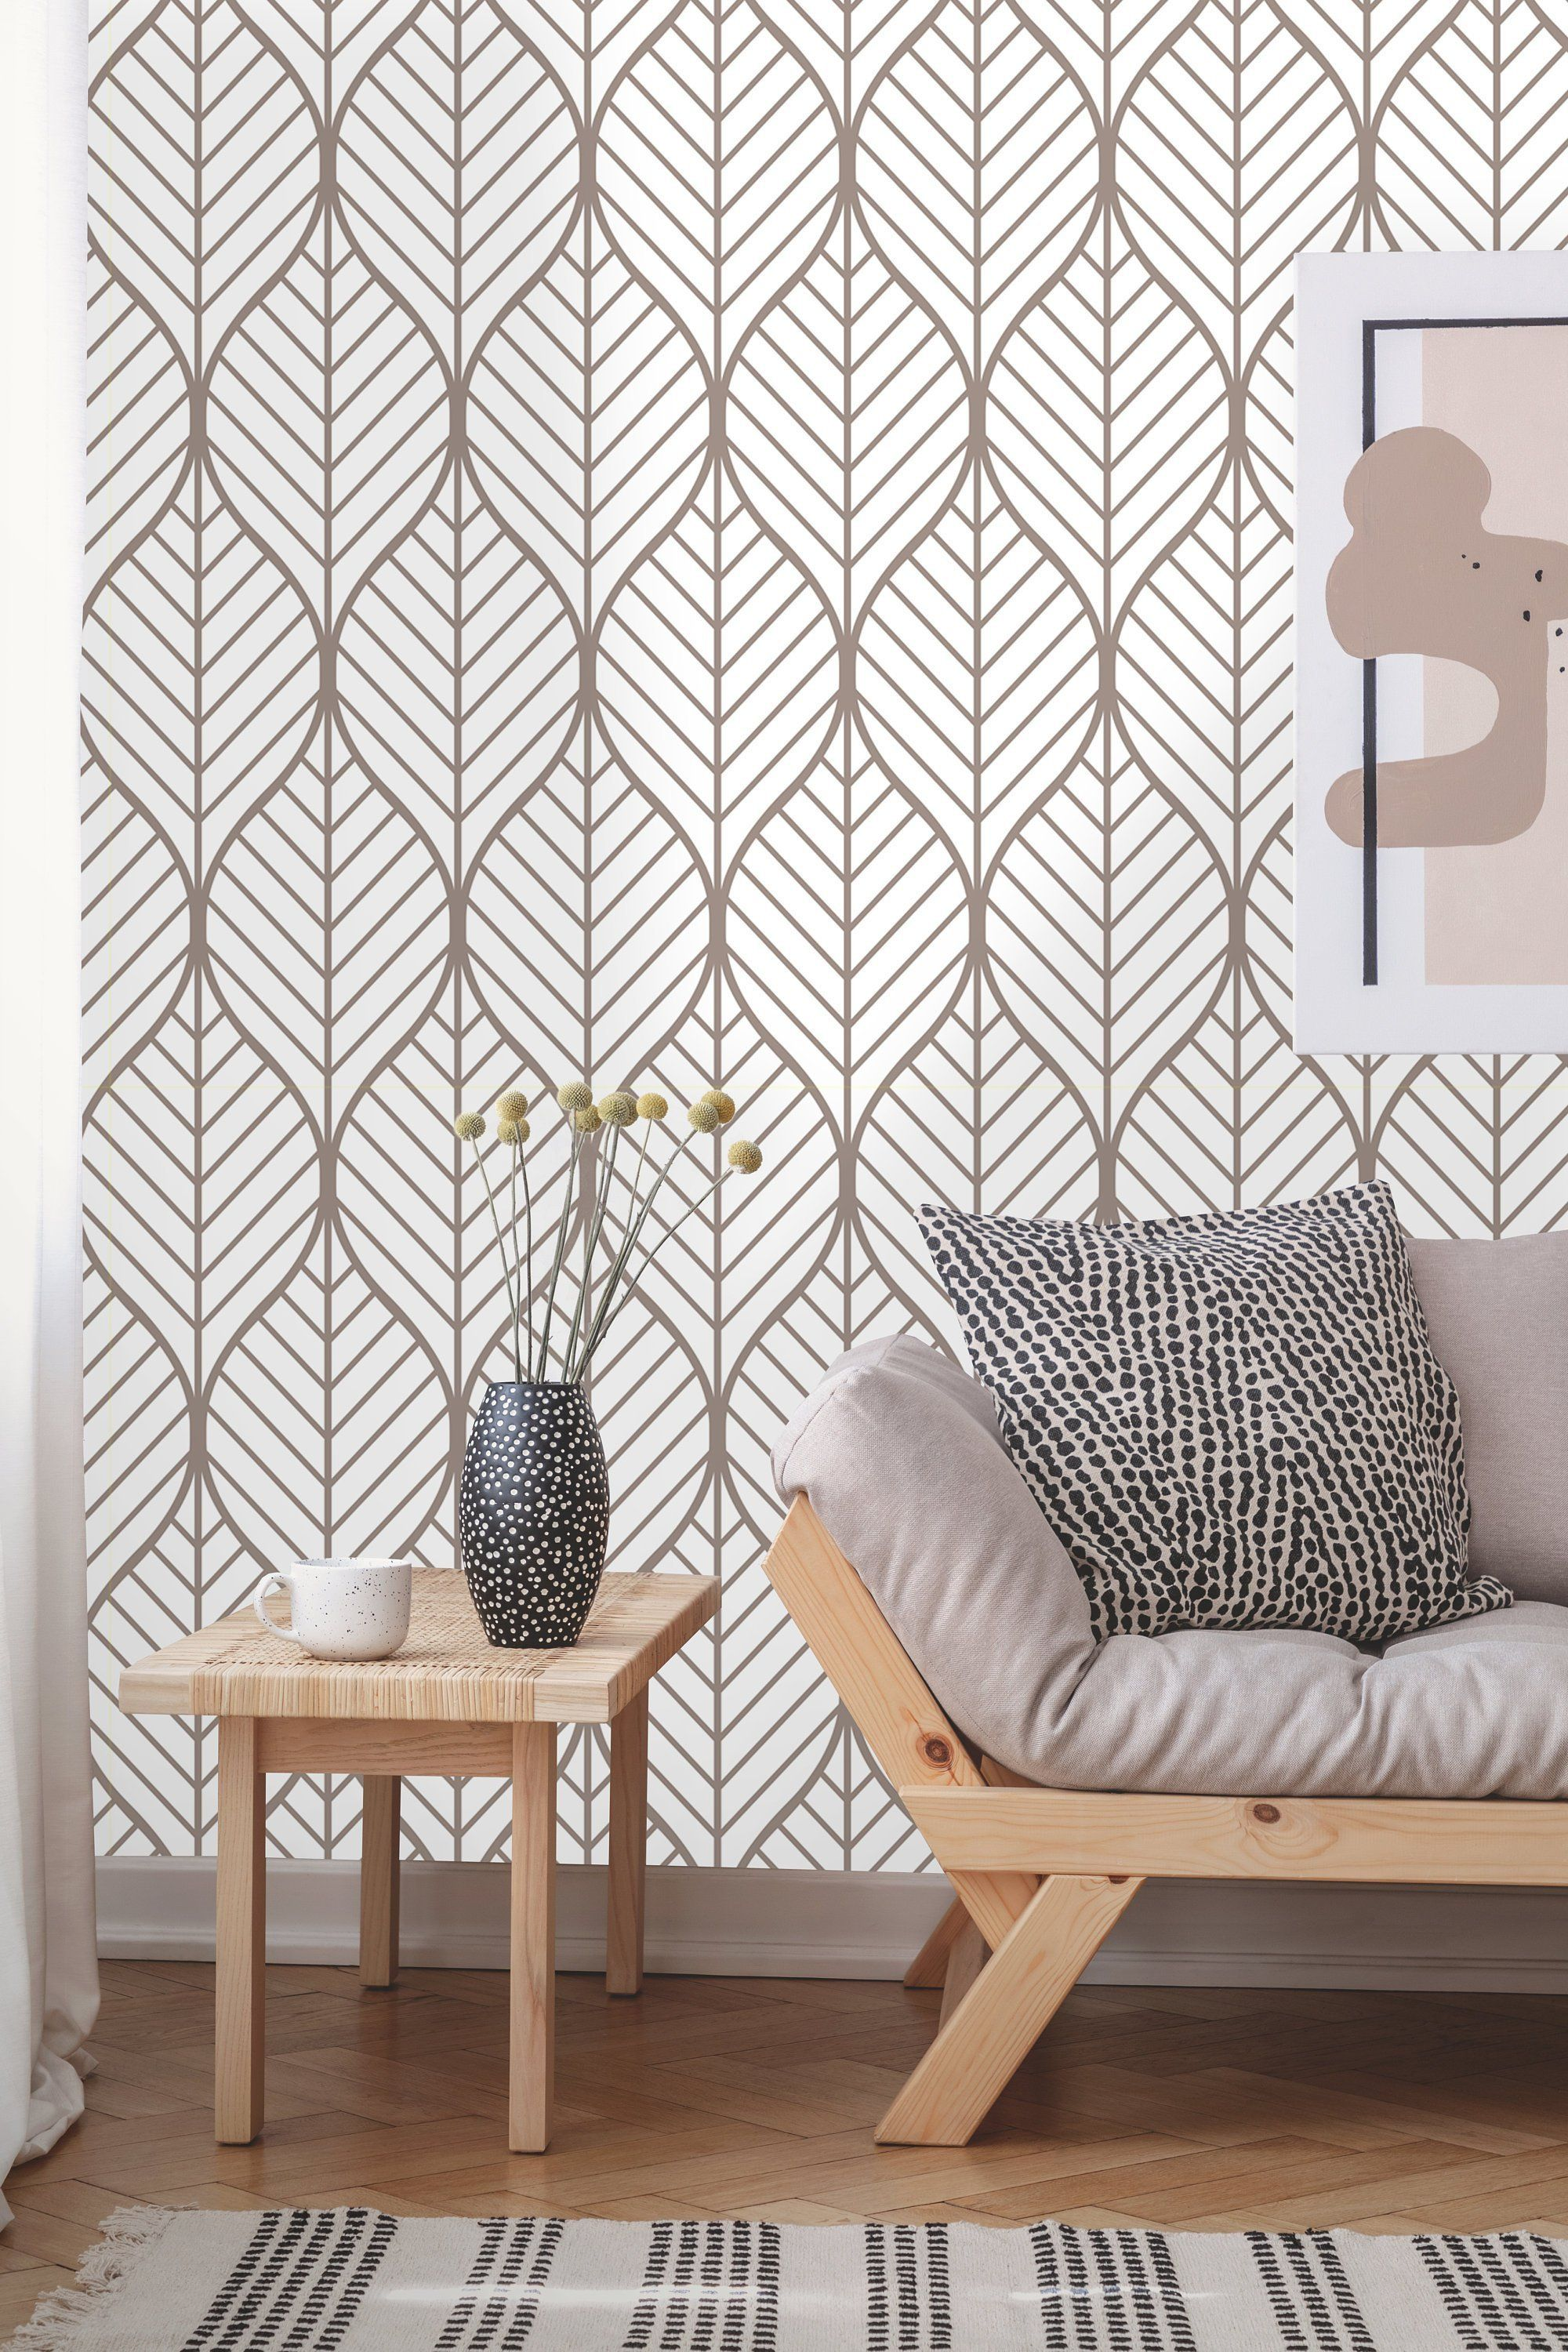 Removable Wallpaper Peel And Stick Geometric Wallpaper Etsy Geometric Wallpaper Simple Decor Decor